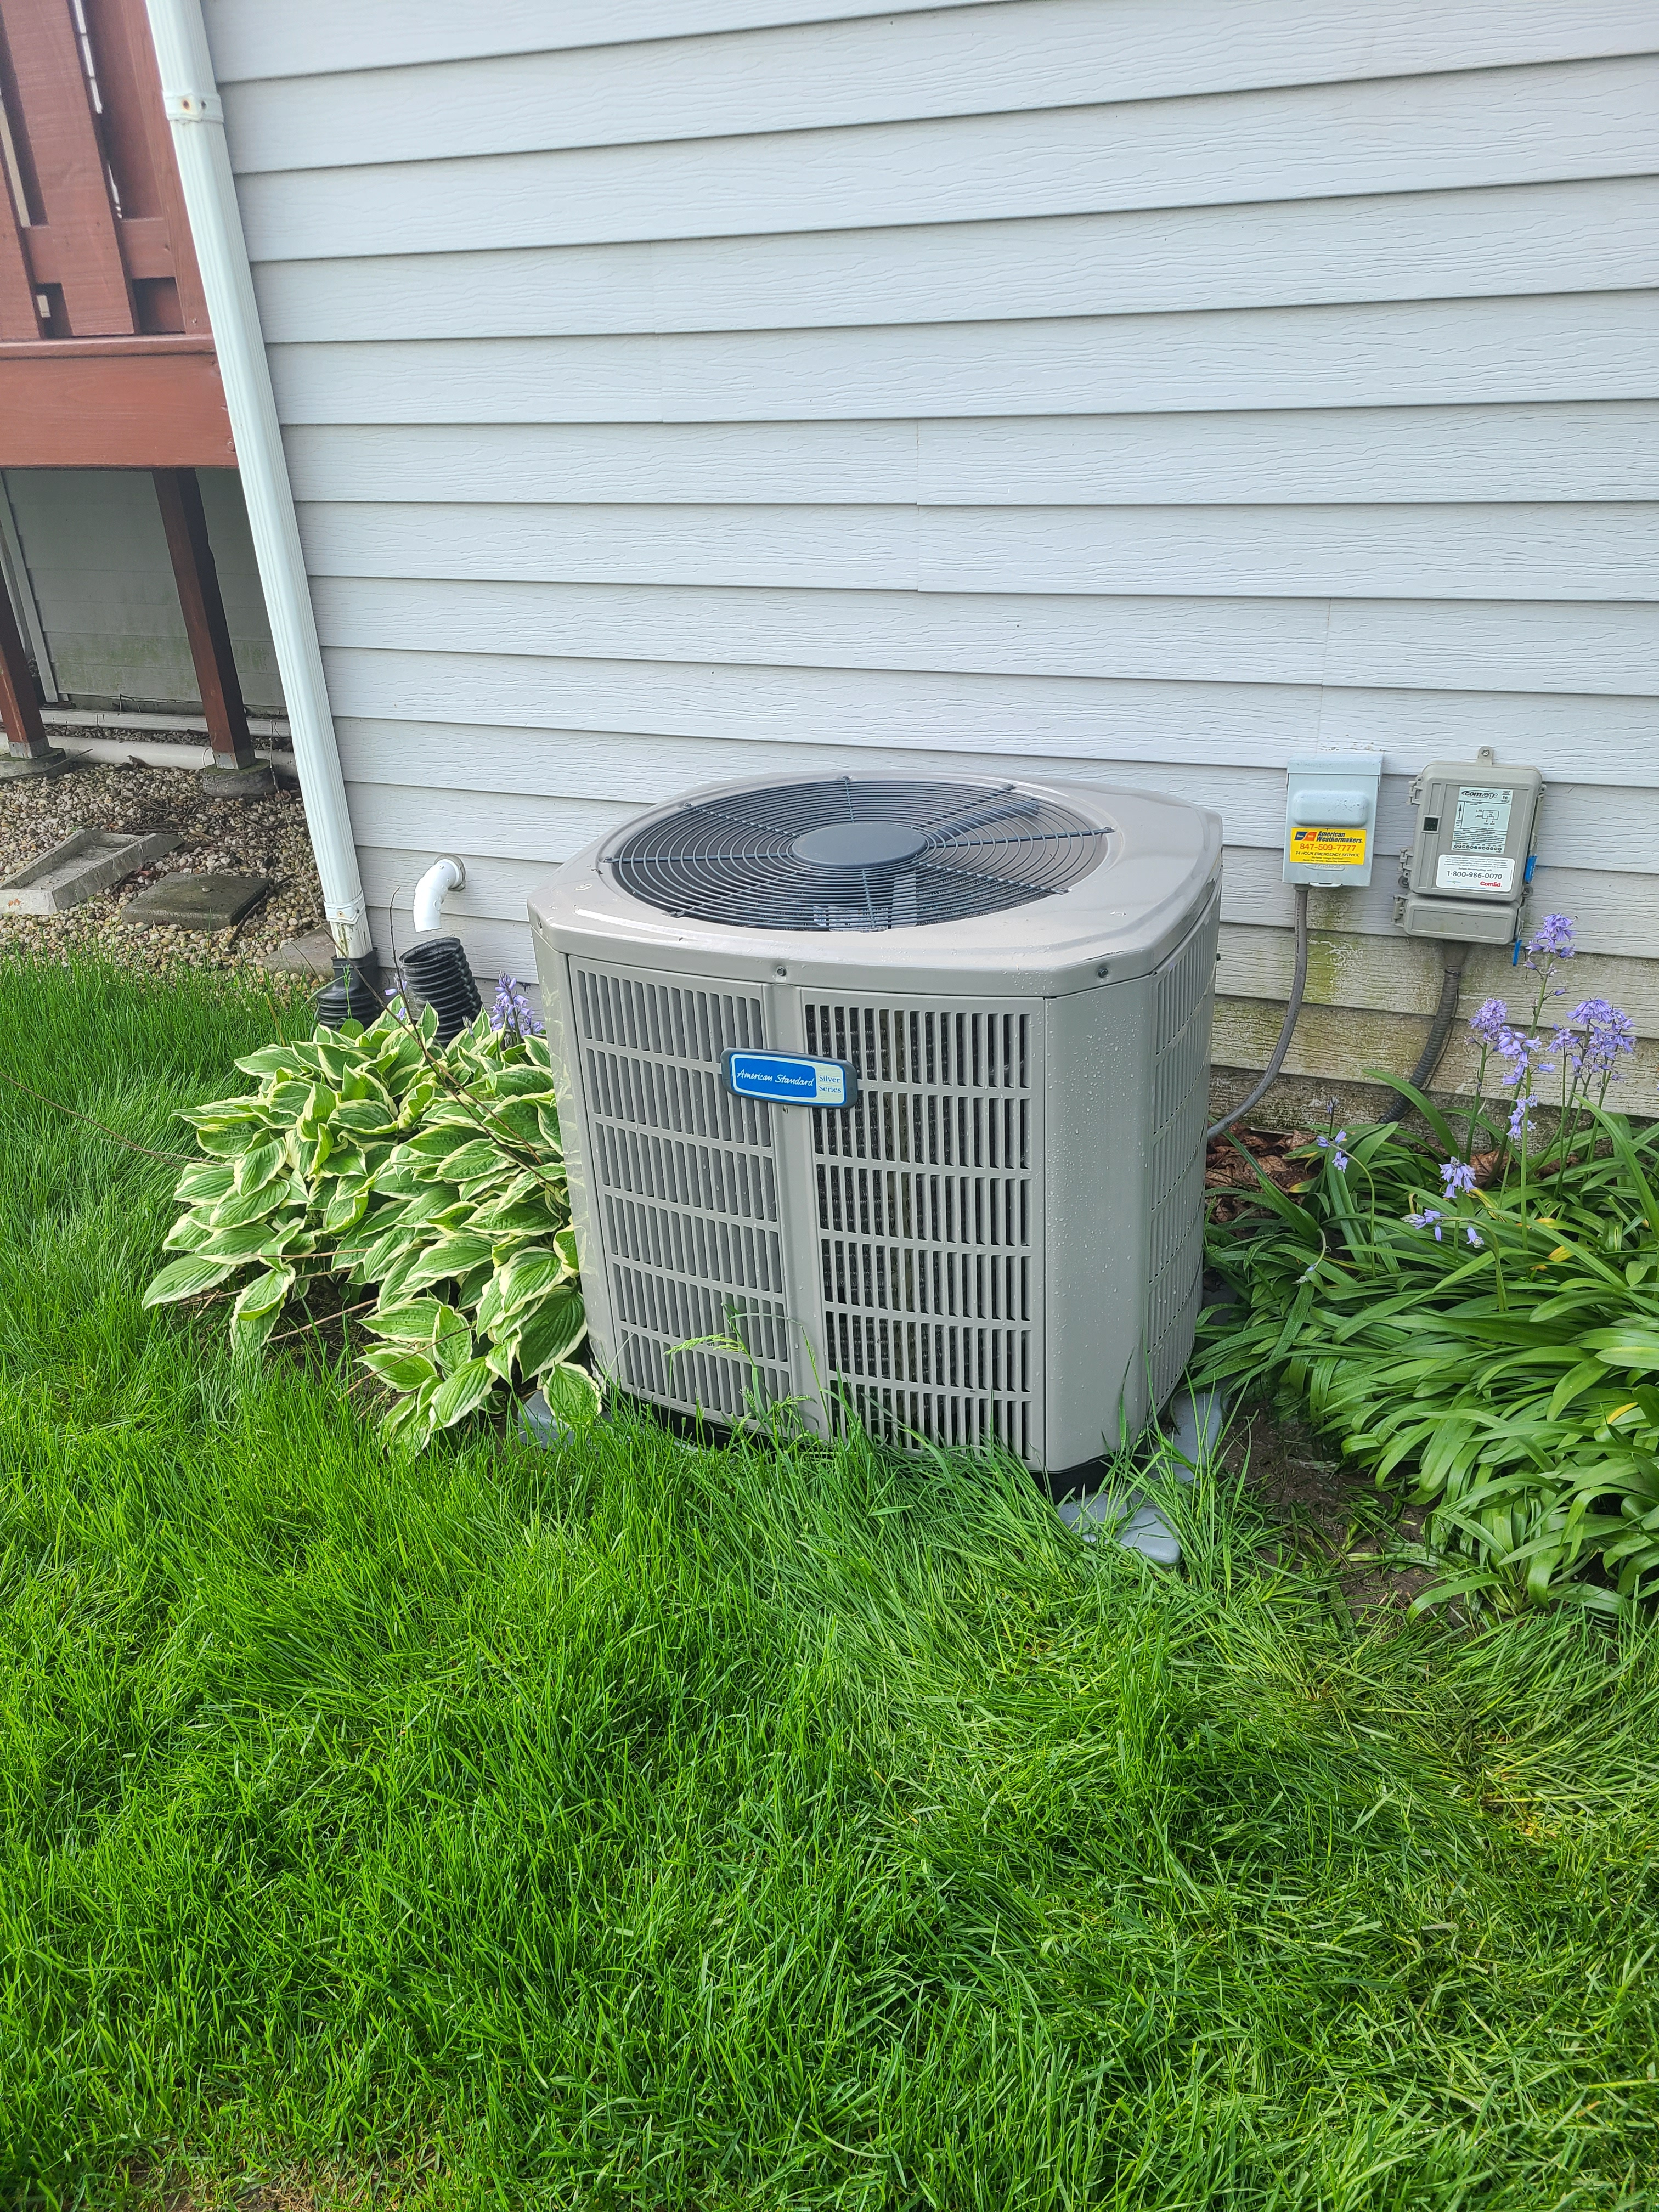 Have confidence in your American Standard air conditioner this summer.